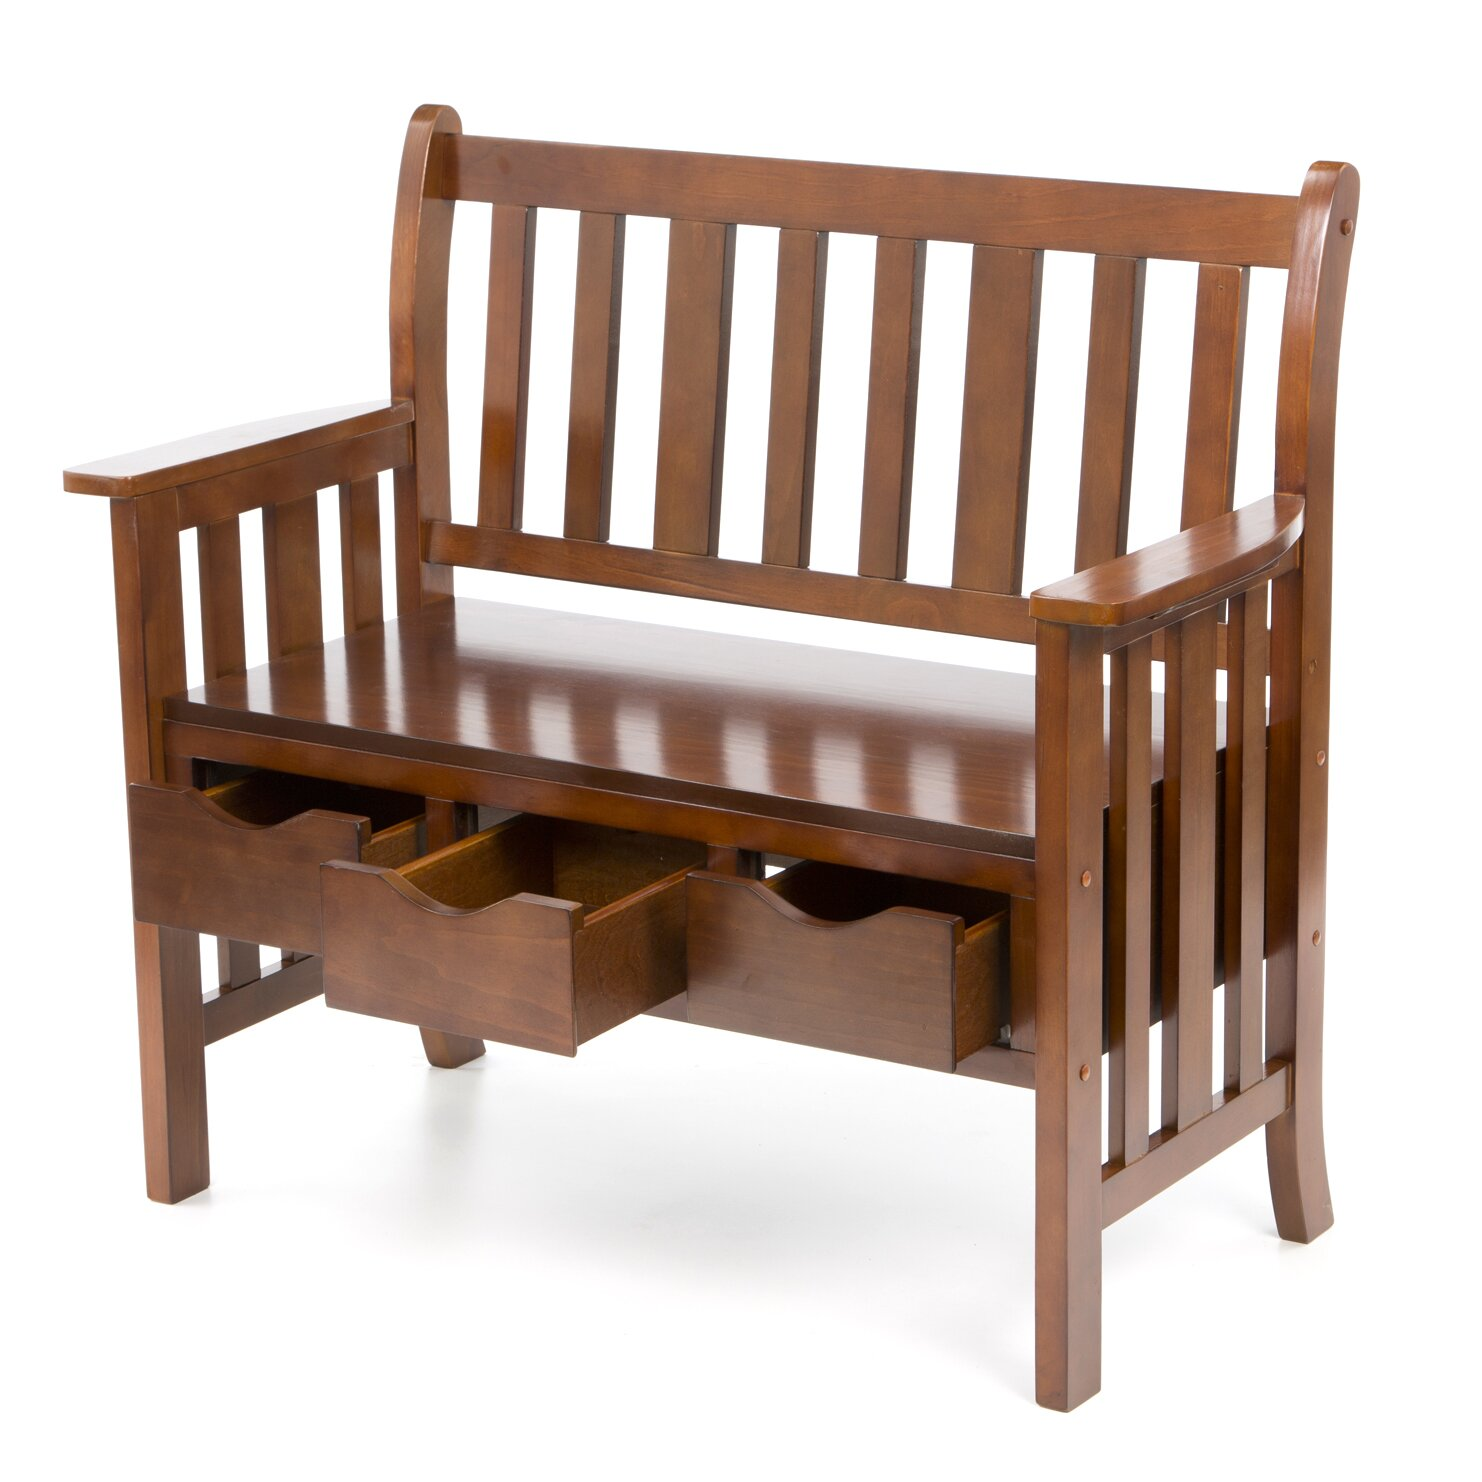 Superb img of  Home ® Davidson Storage Wood Entryway Bench & Reviews Wayfair with #381E0E color and 1482x1482 pixels